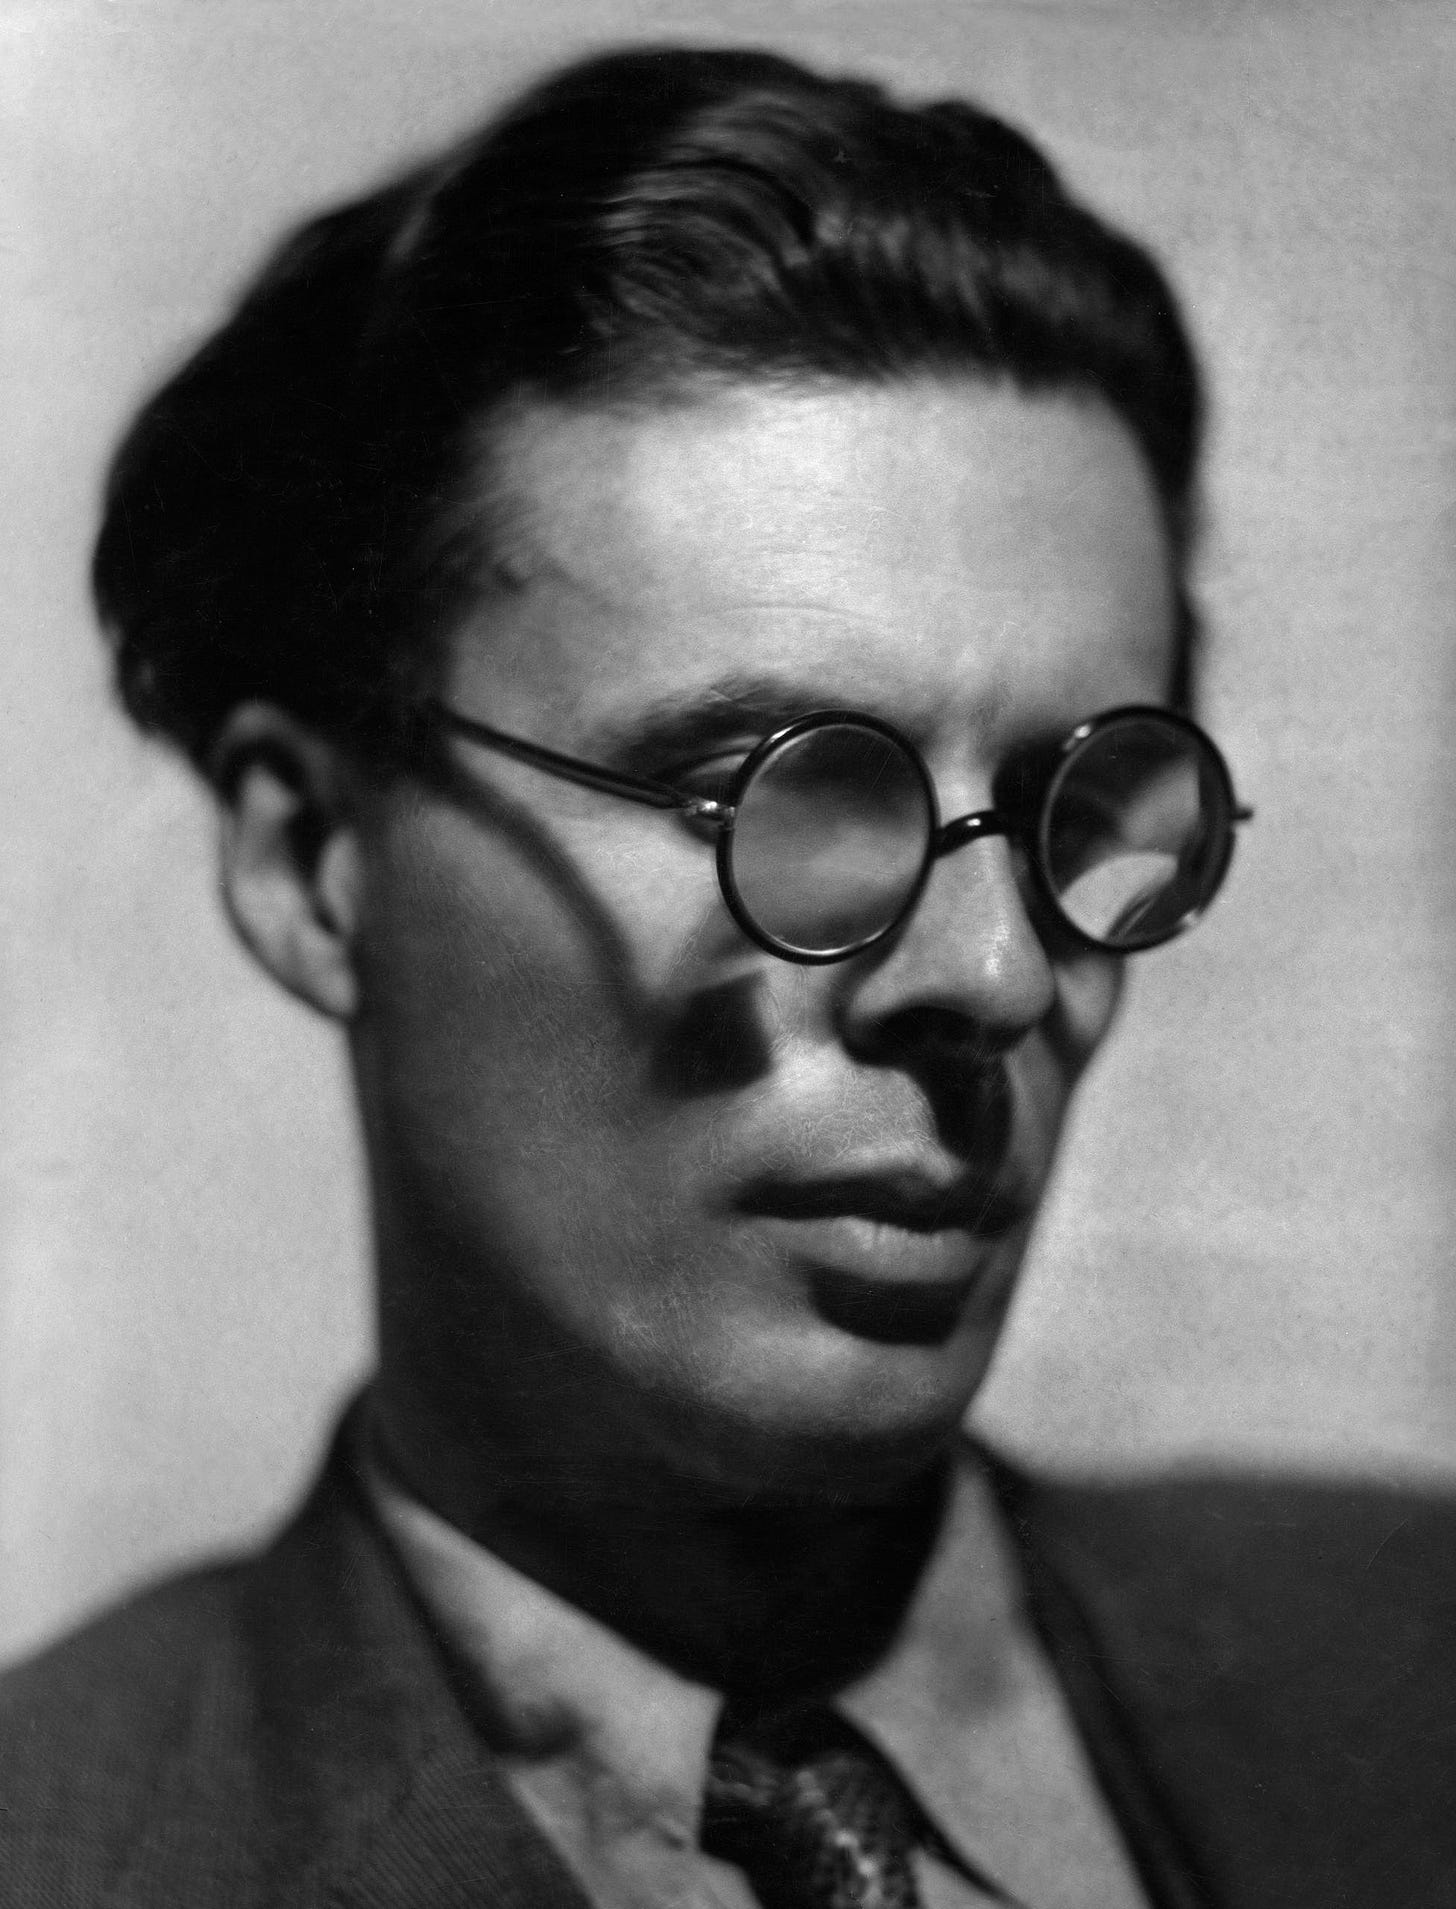 Aldous Huxley, Short of Sight | The New Yorker